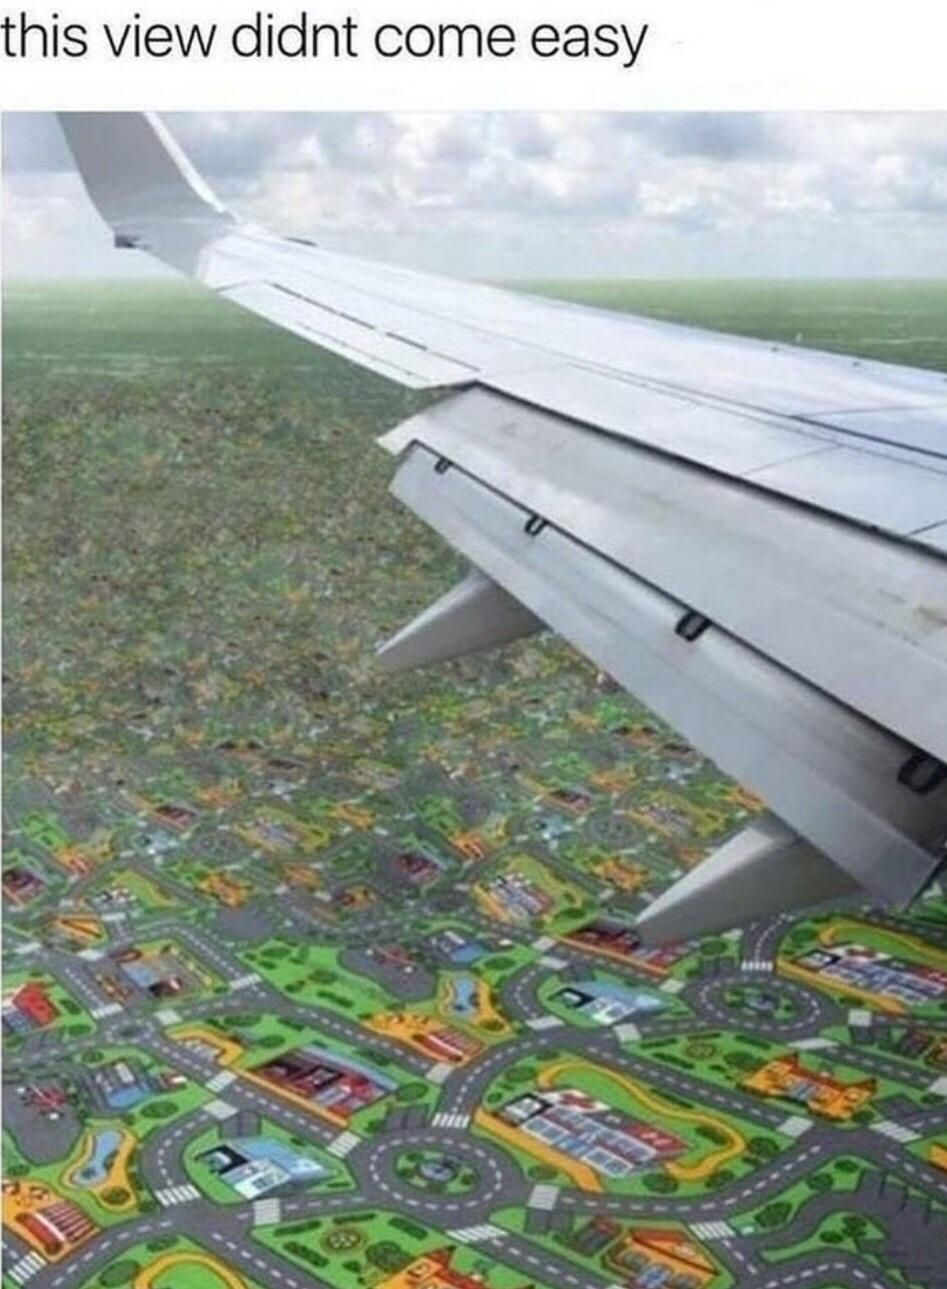 Imagine seeing this when you're in a airplane...